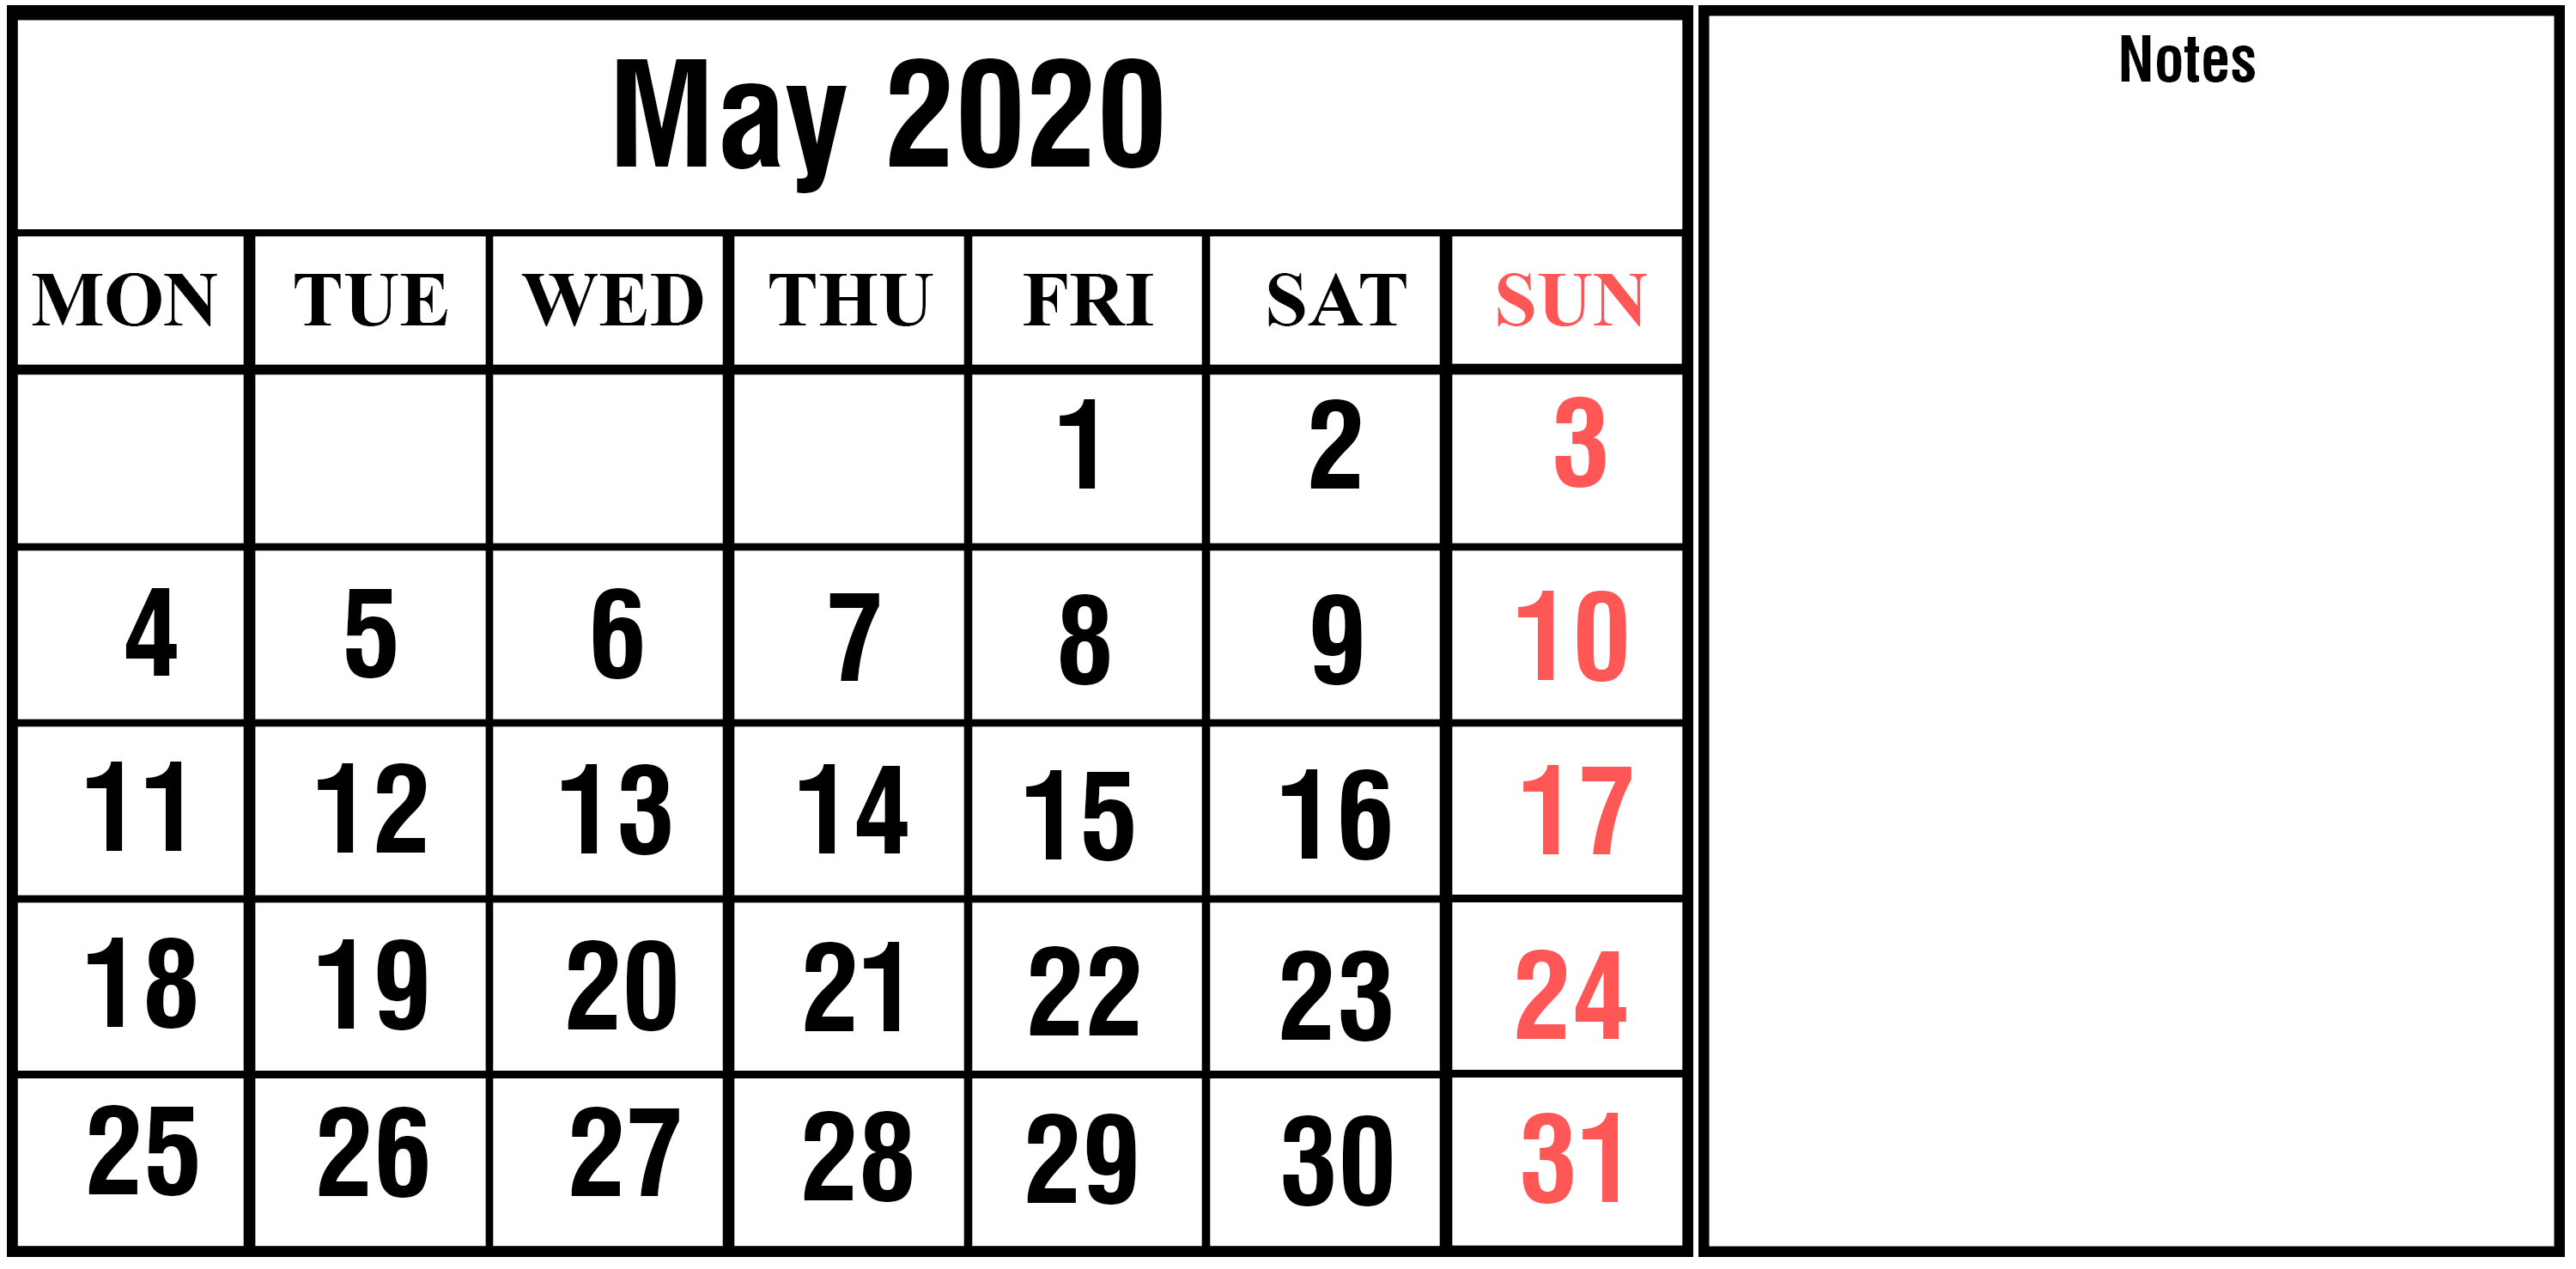 Calendar May 2020 Printable with Notes